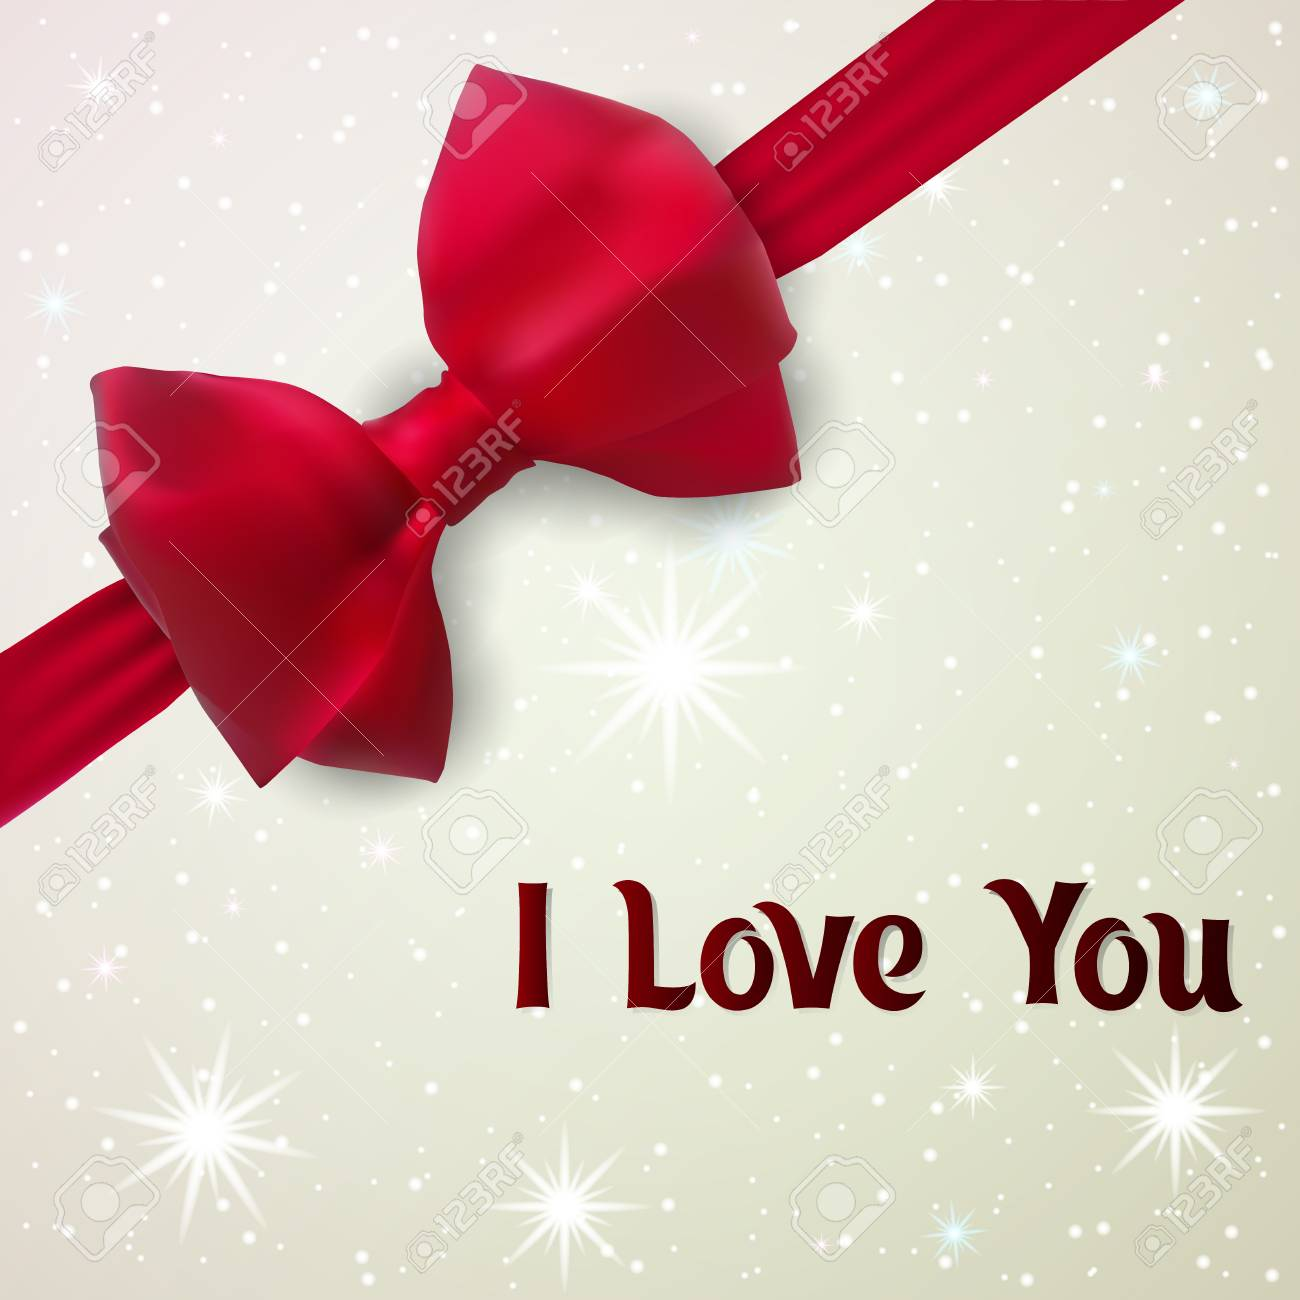 I Love You Greeting Card For Lovers E Card With Red Bow Vector